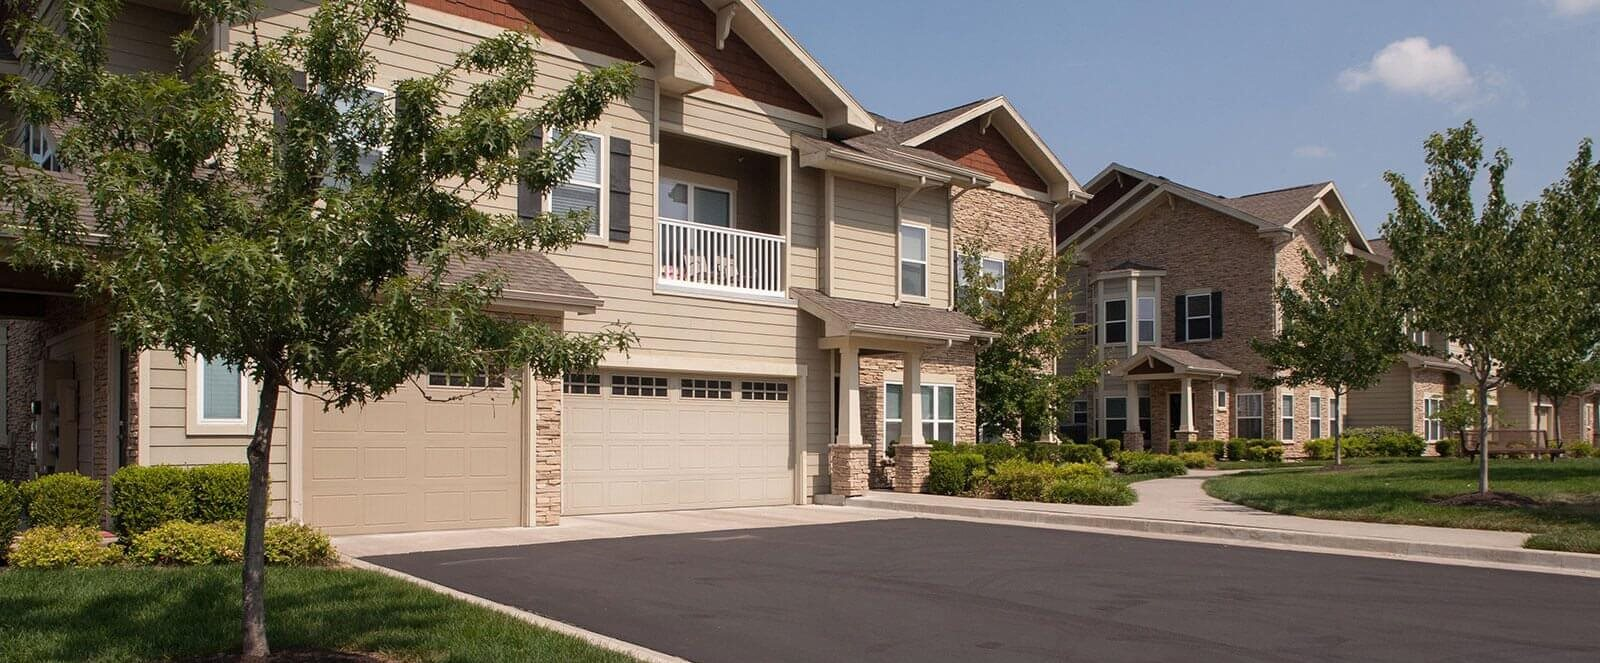 Garages Available at Villas at Carrington Square, Overland Park